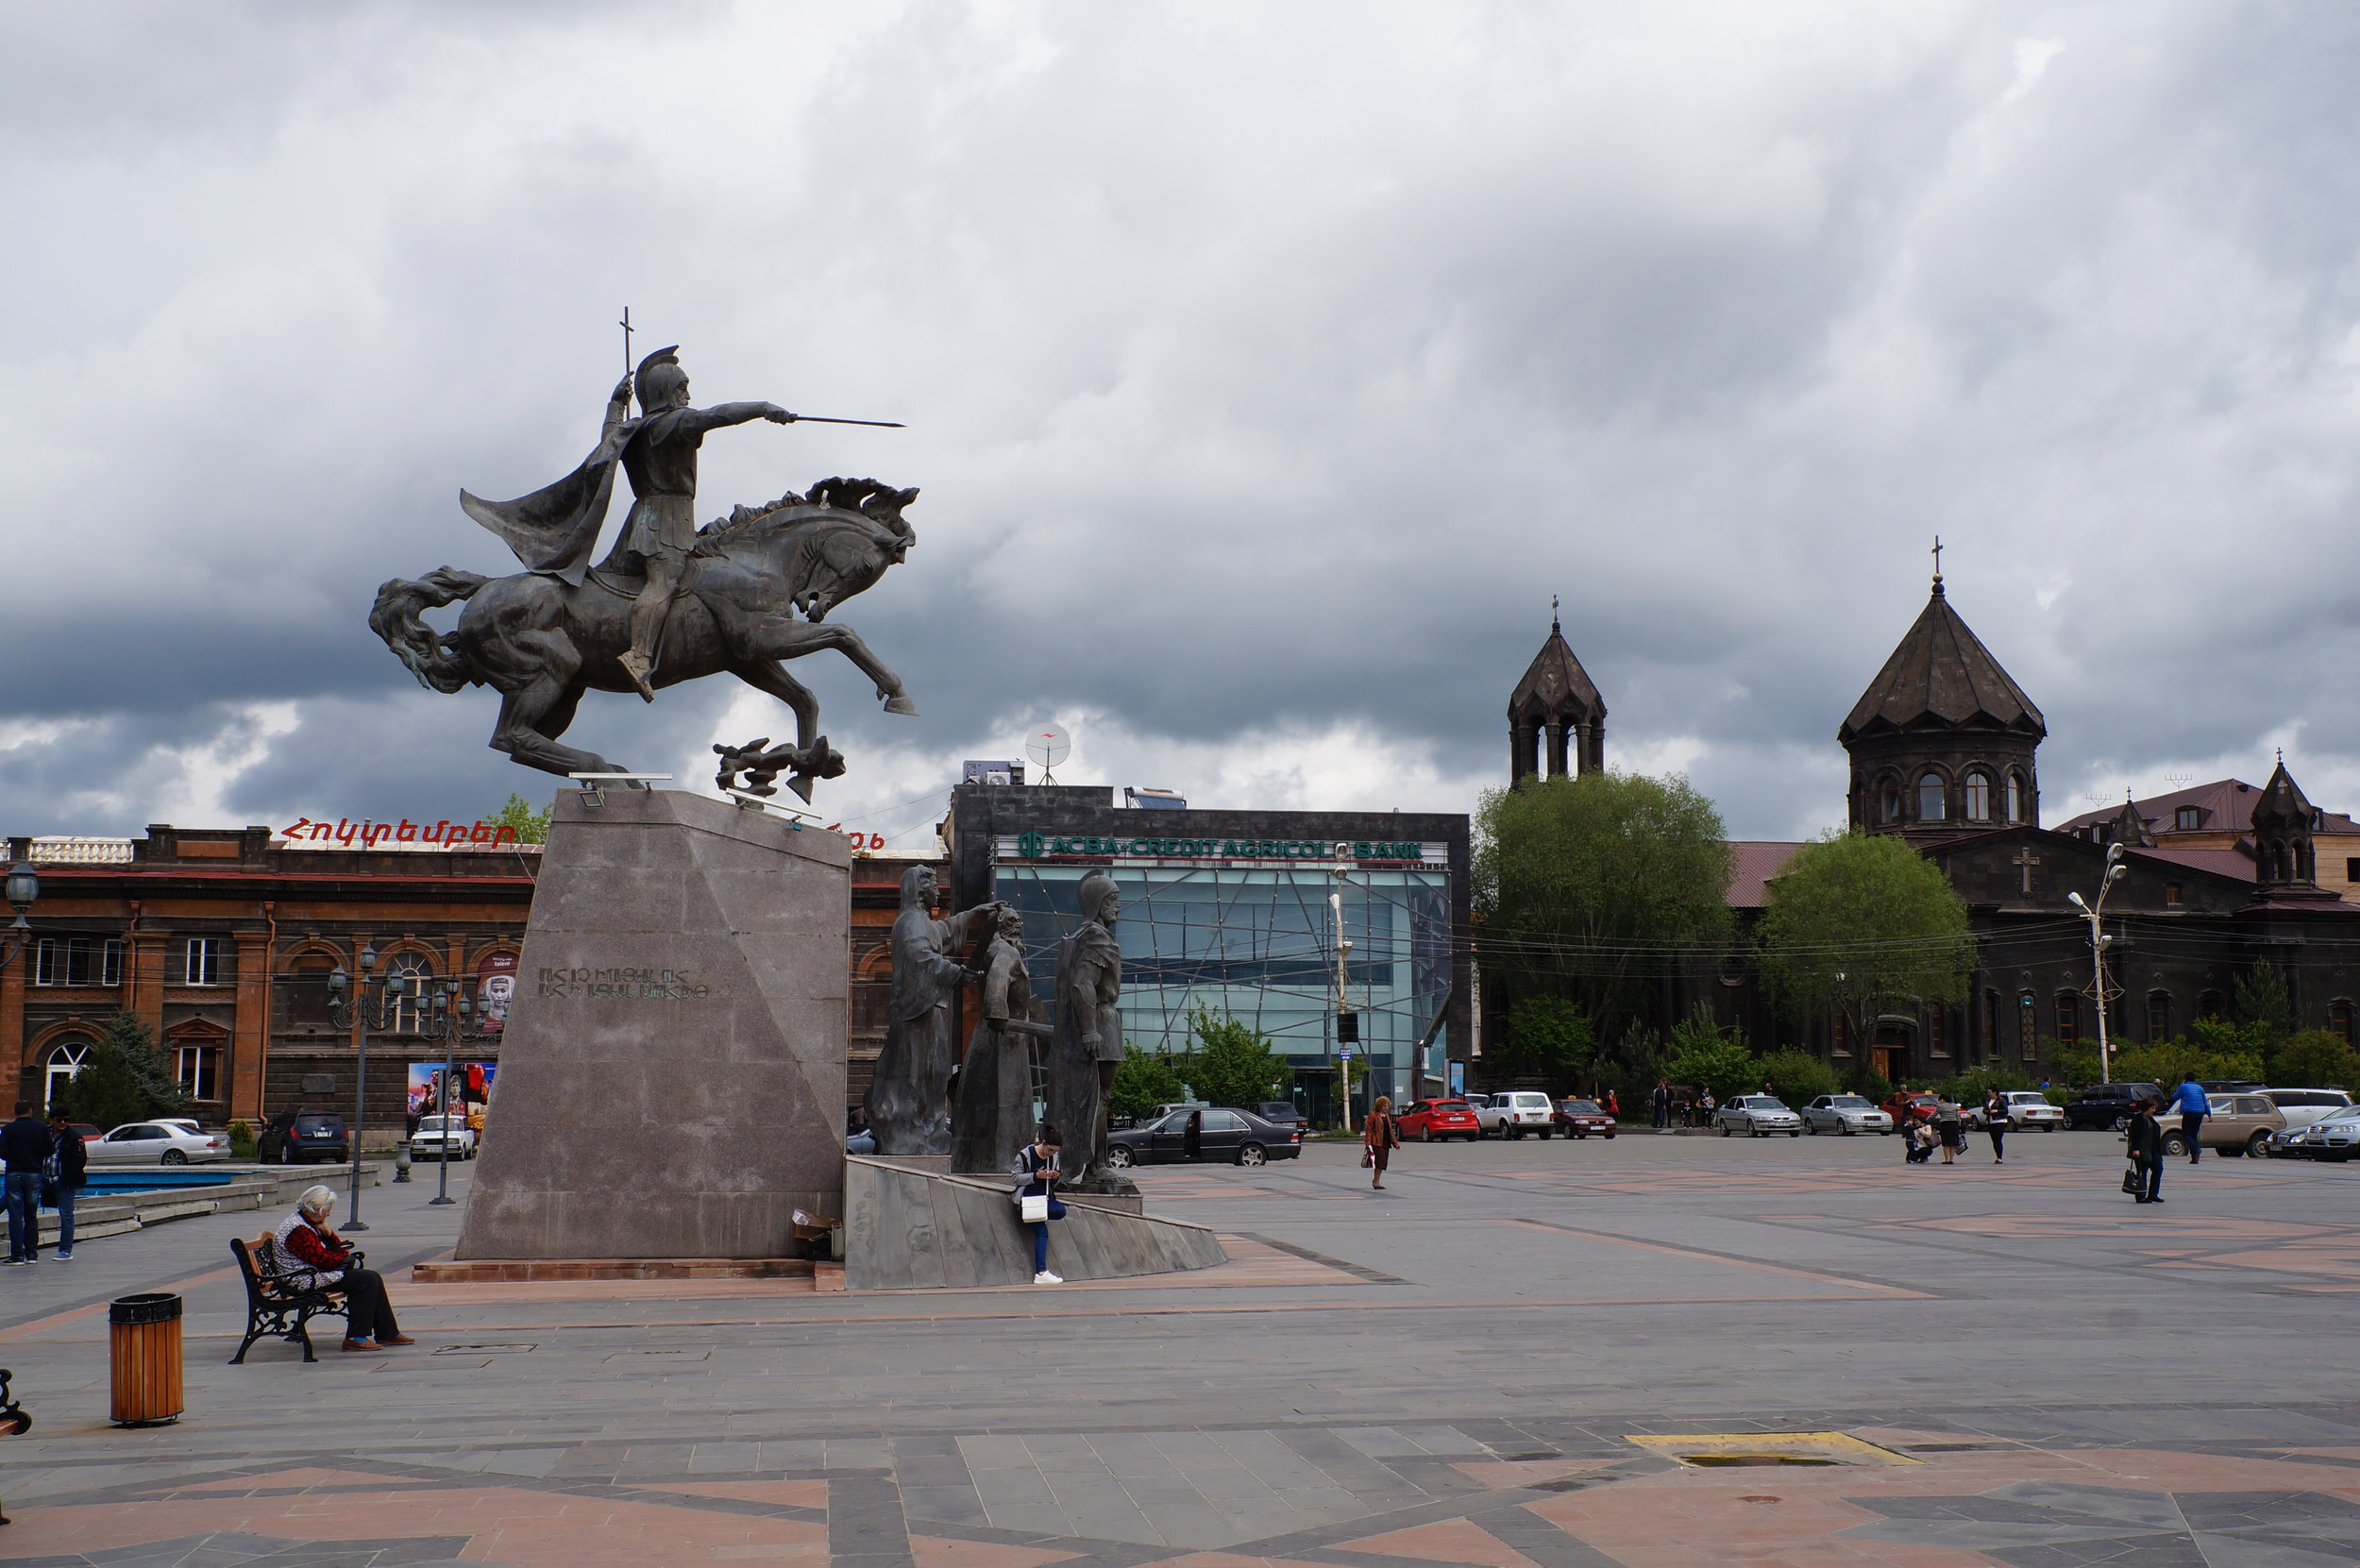 This statue features Vartan Mamikonian, a military leader in the Battle of Avarayr, in Gyumri's Vardanants Square.